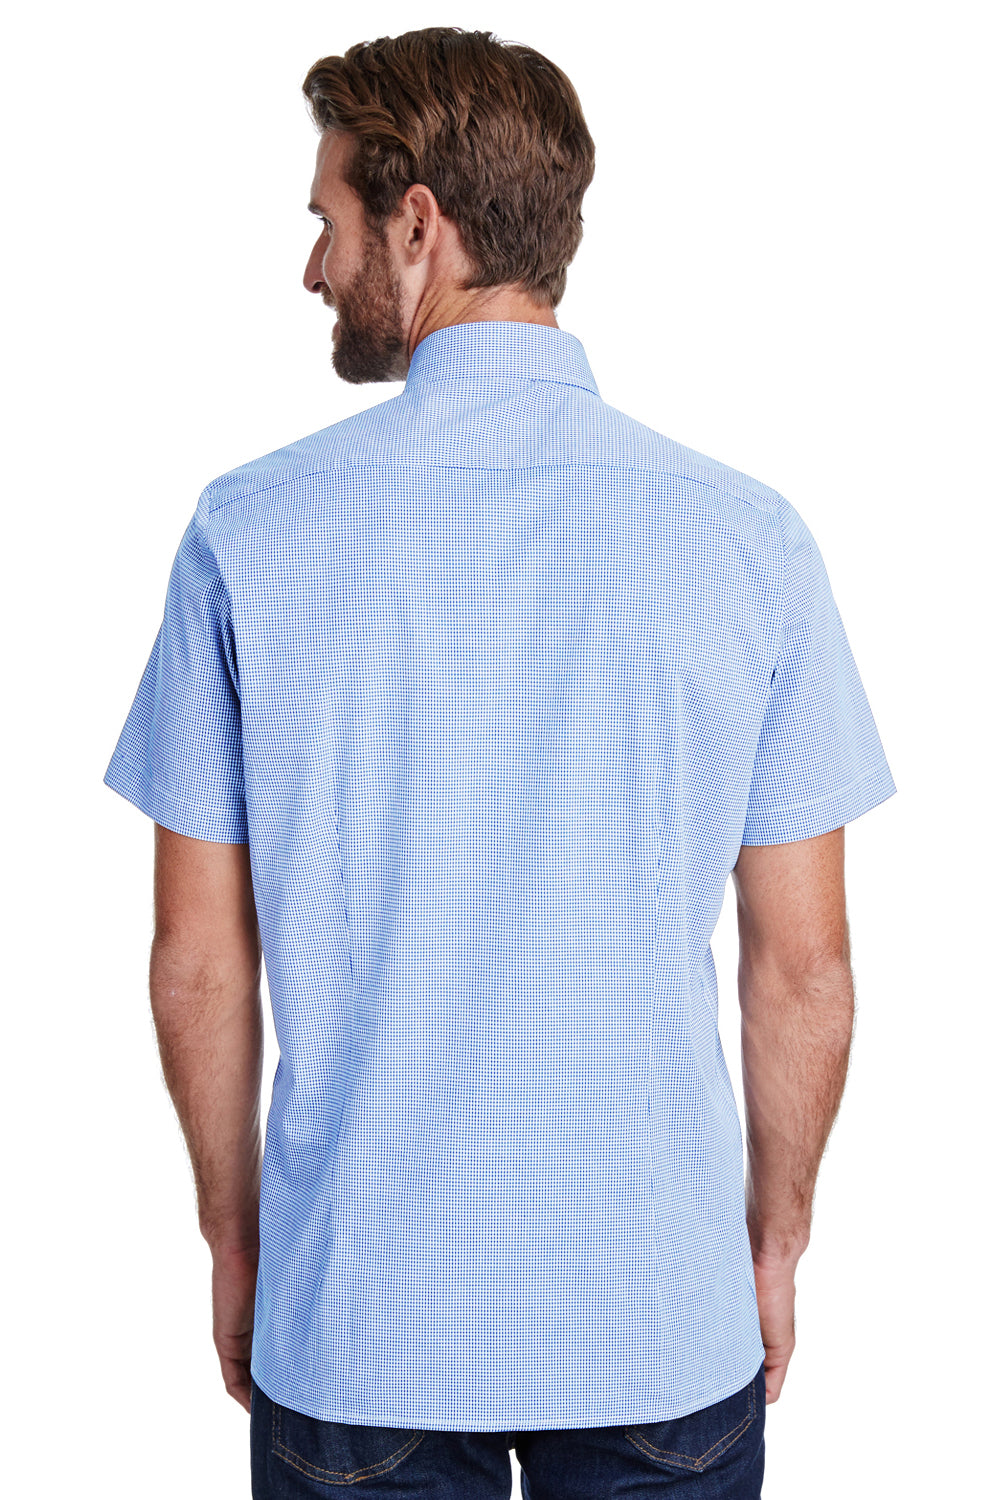 Artisan Collection RP221 Mens Microcheck Gingham Short Sleeve Button Down Shirt Light Blue/White Back